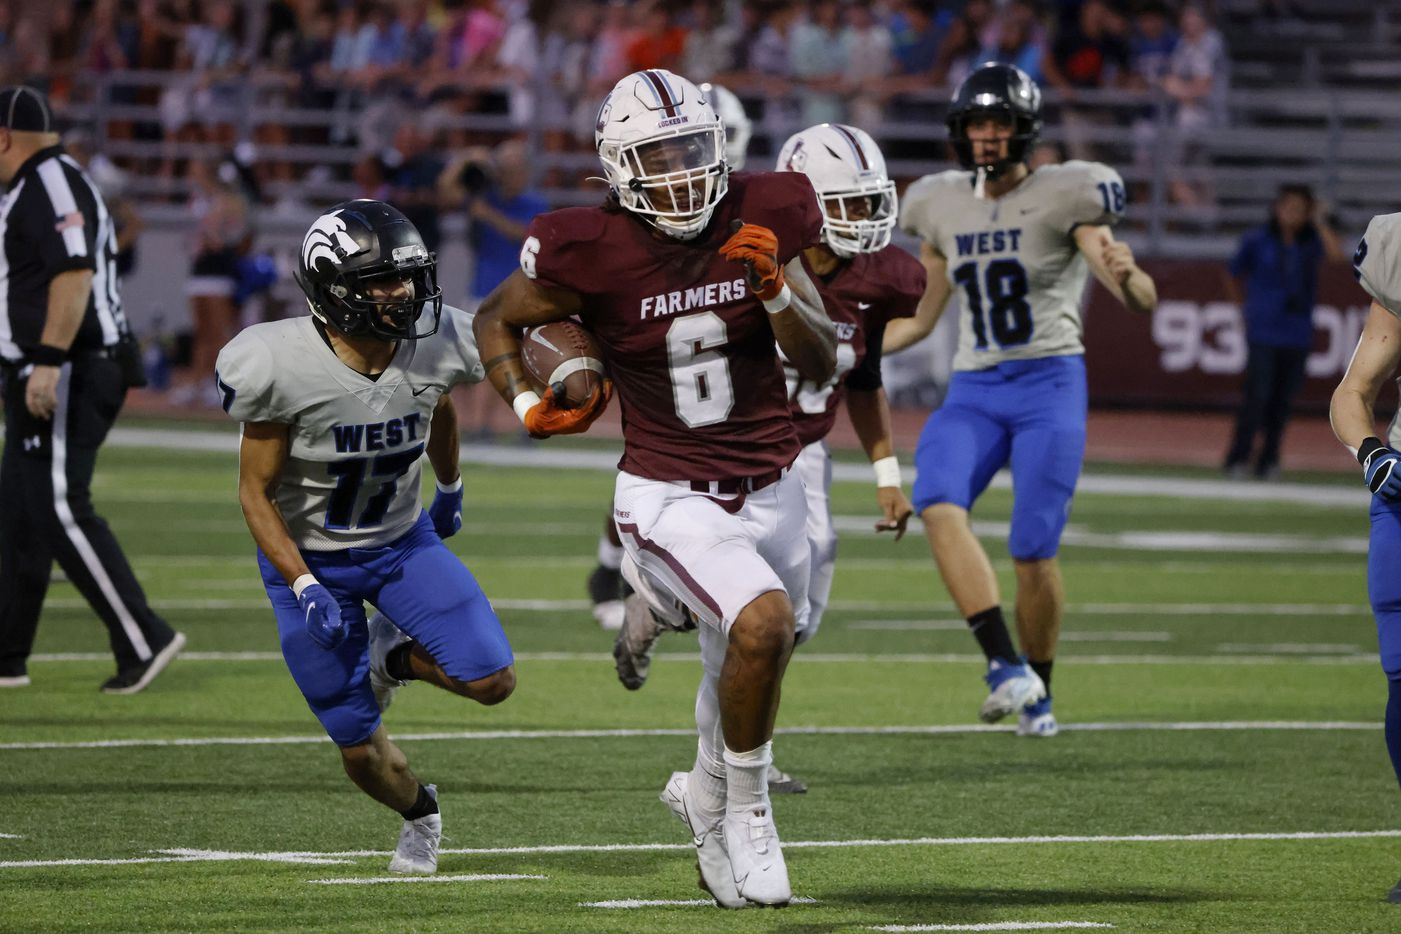 Plano West defender Gael Aguirre (17) chases as Lewisville running back Damien Martinez (6) runs for a toouchdown during the first half of a high school football game in Lewisville, Texas on Friday, Sept. 24, 2021. (Michael Ainsworth/Special Contributor)